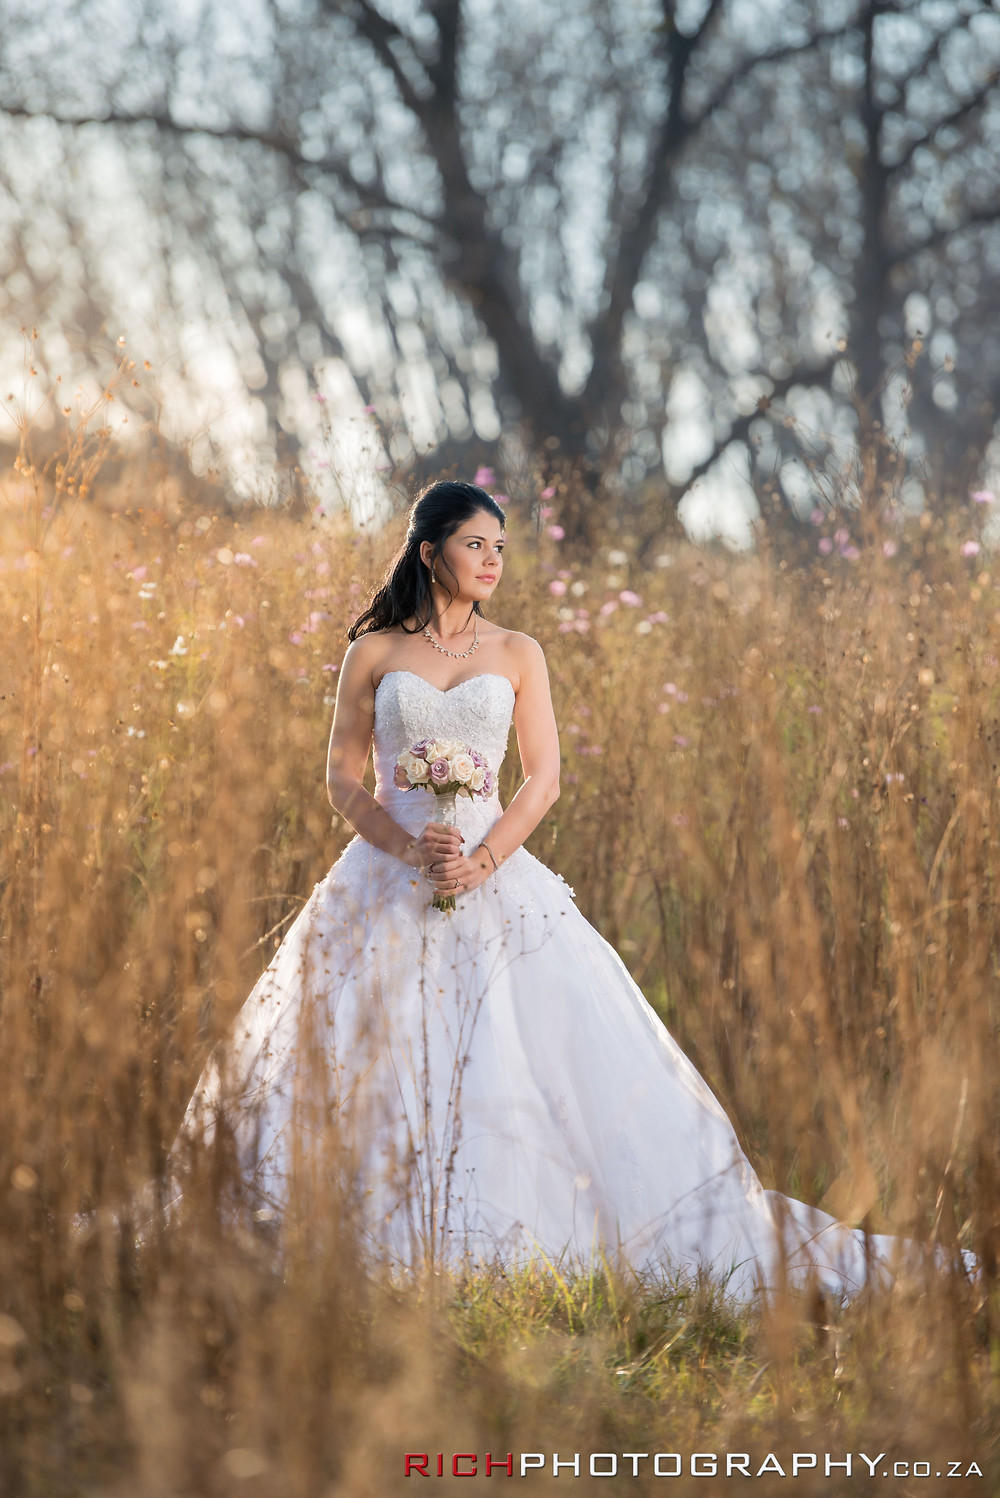 Wedding Photography in Johannesburg